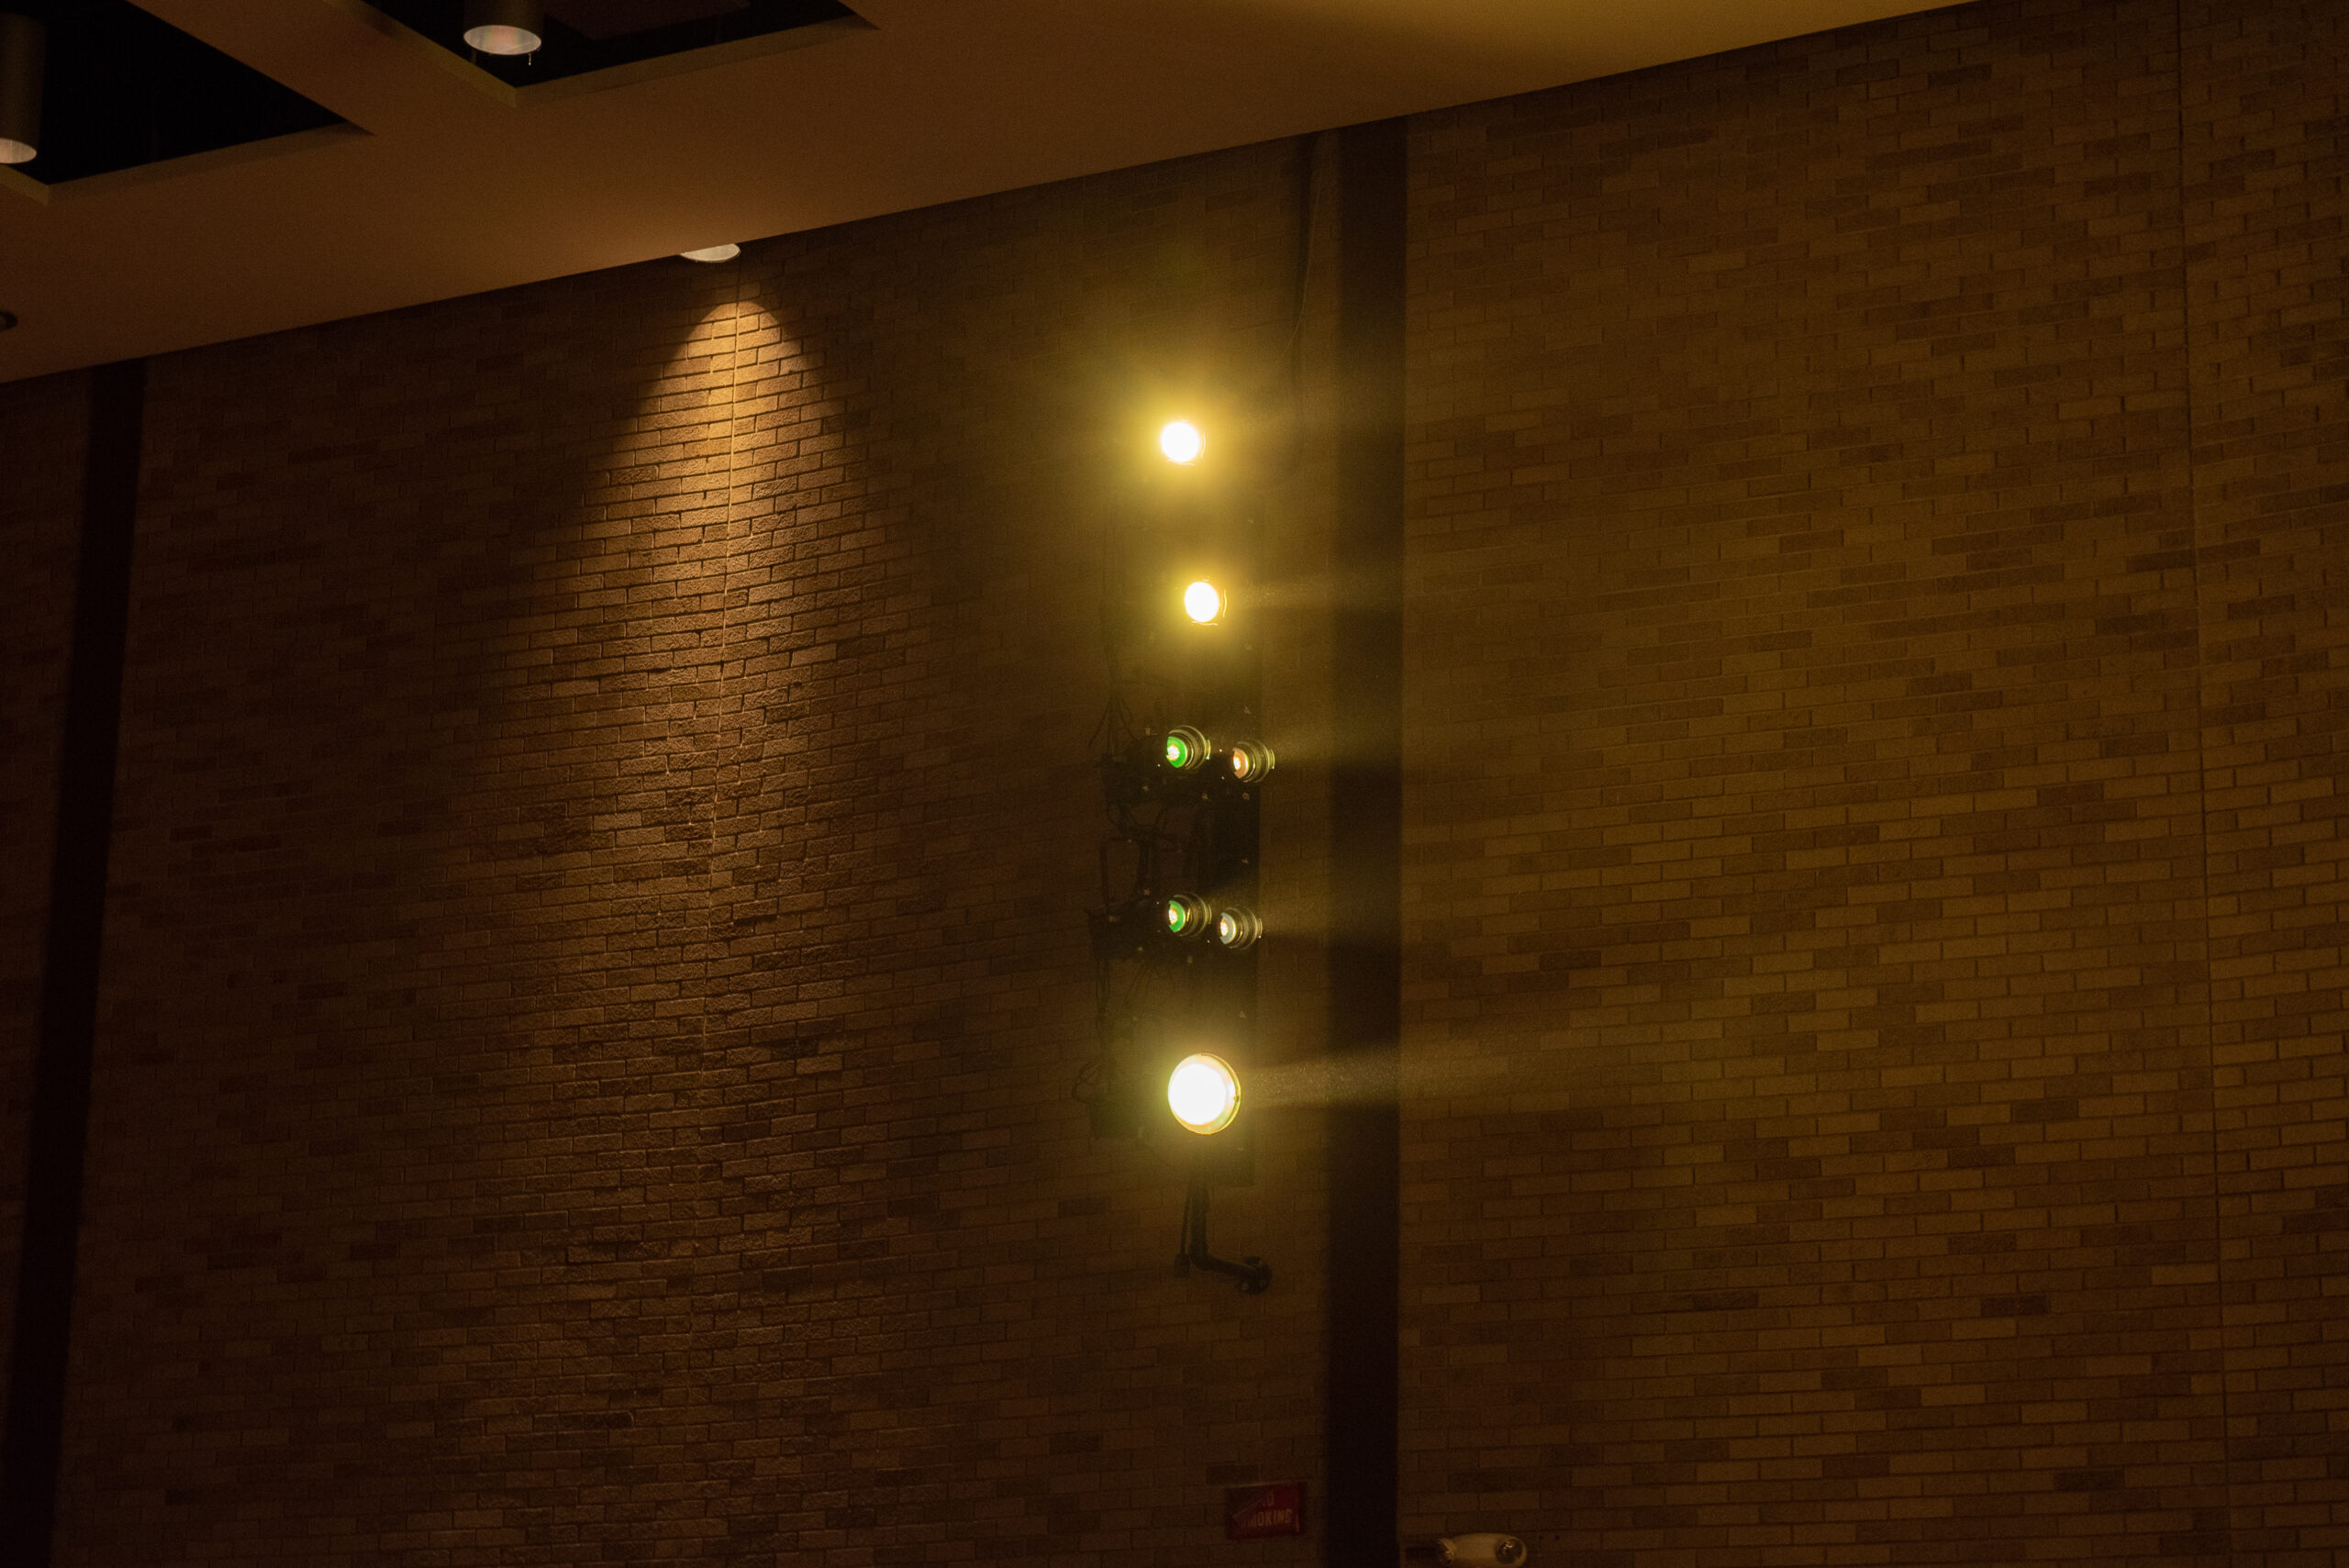 Spotlights on the side in action